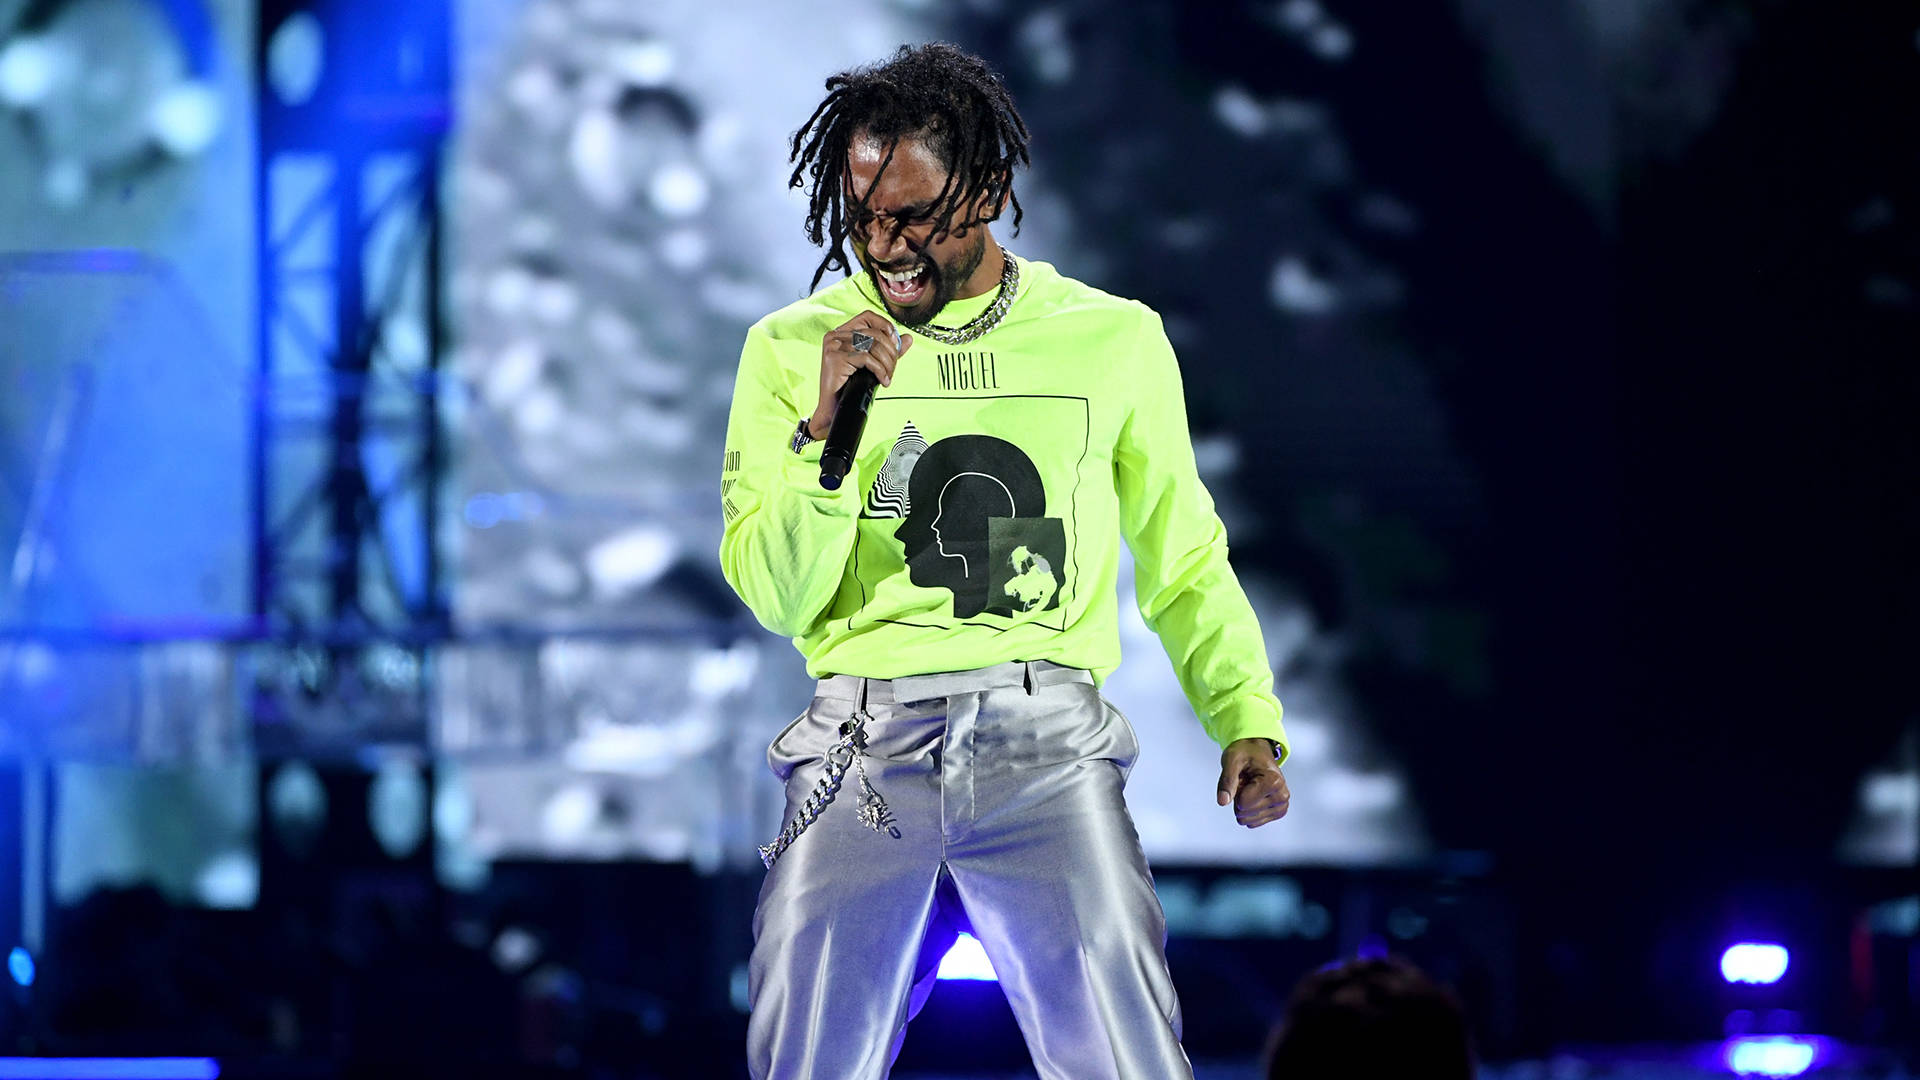 Miguel performs during the 2018 iHeartRadio Music Festival on September 21, 2018 in Las Vegas, Nevada.  Kevin Winter/Getty Images for iHeartMedia